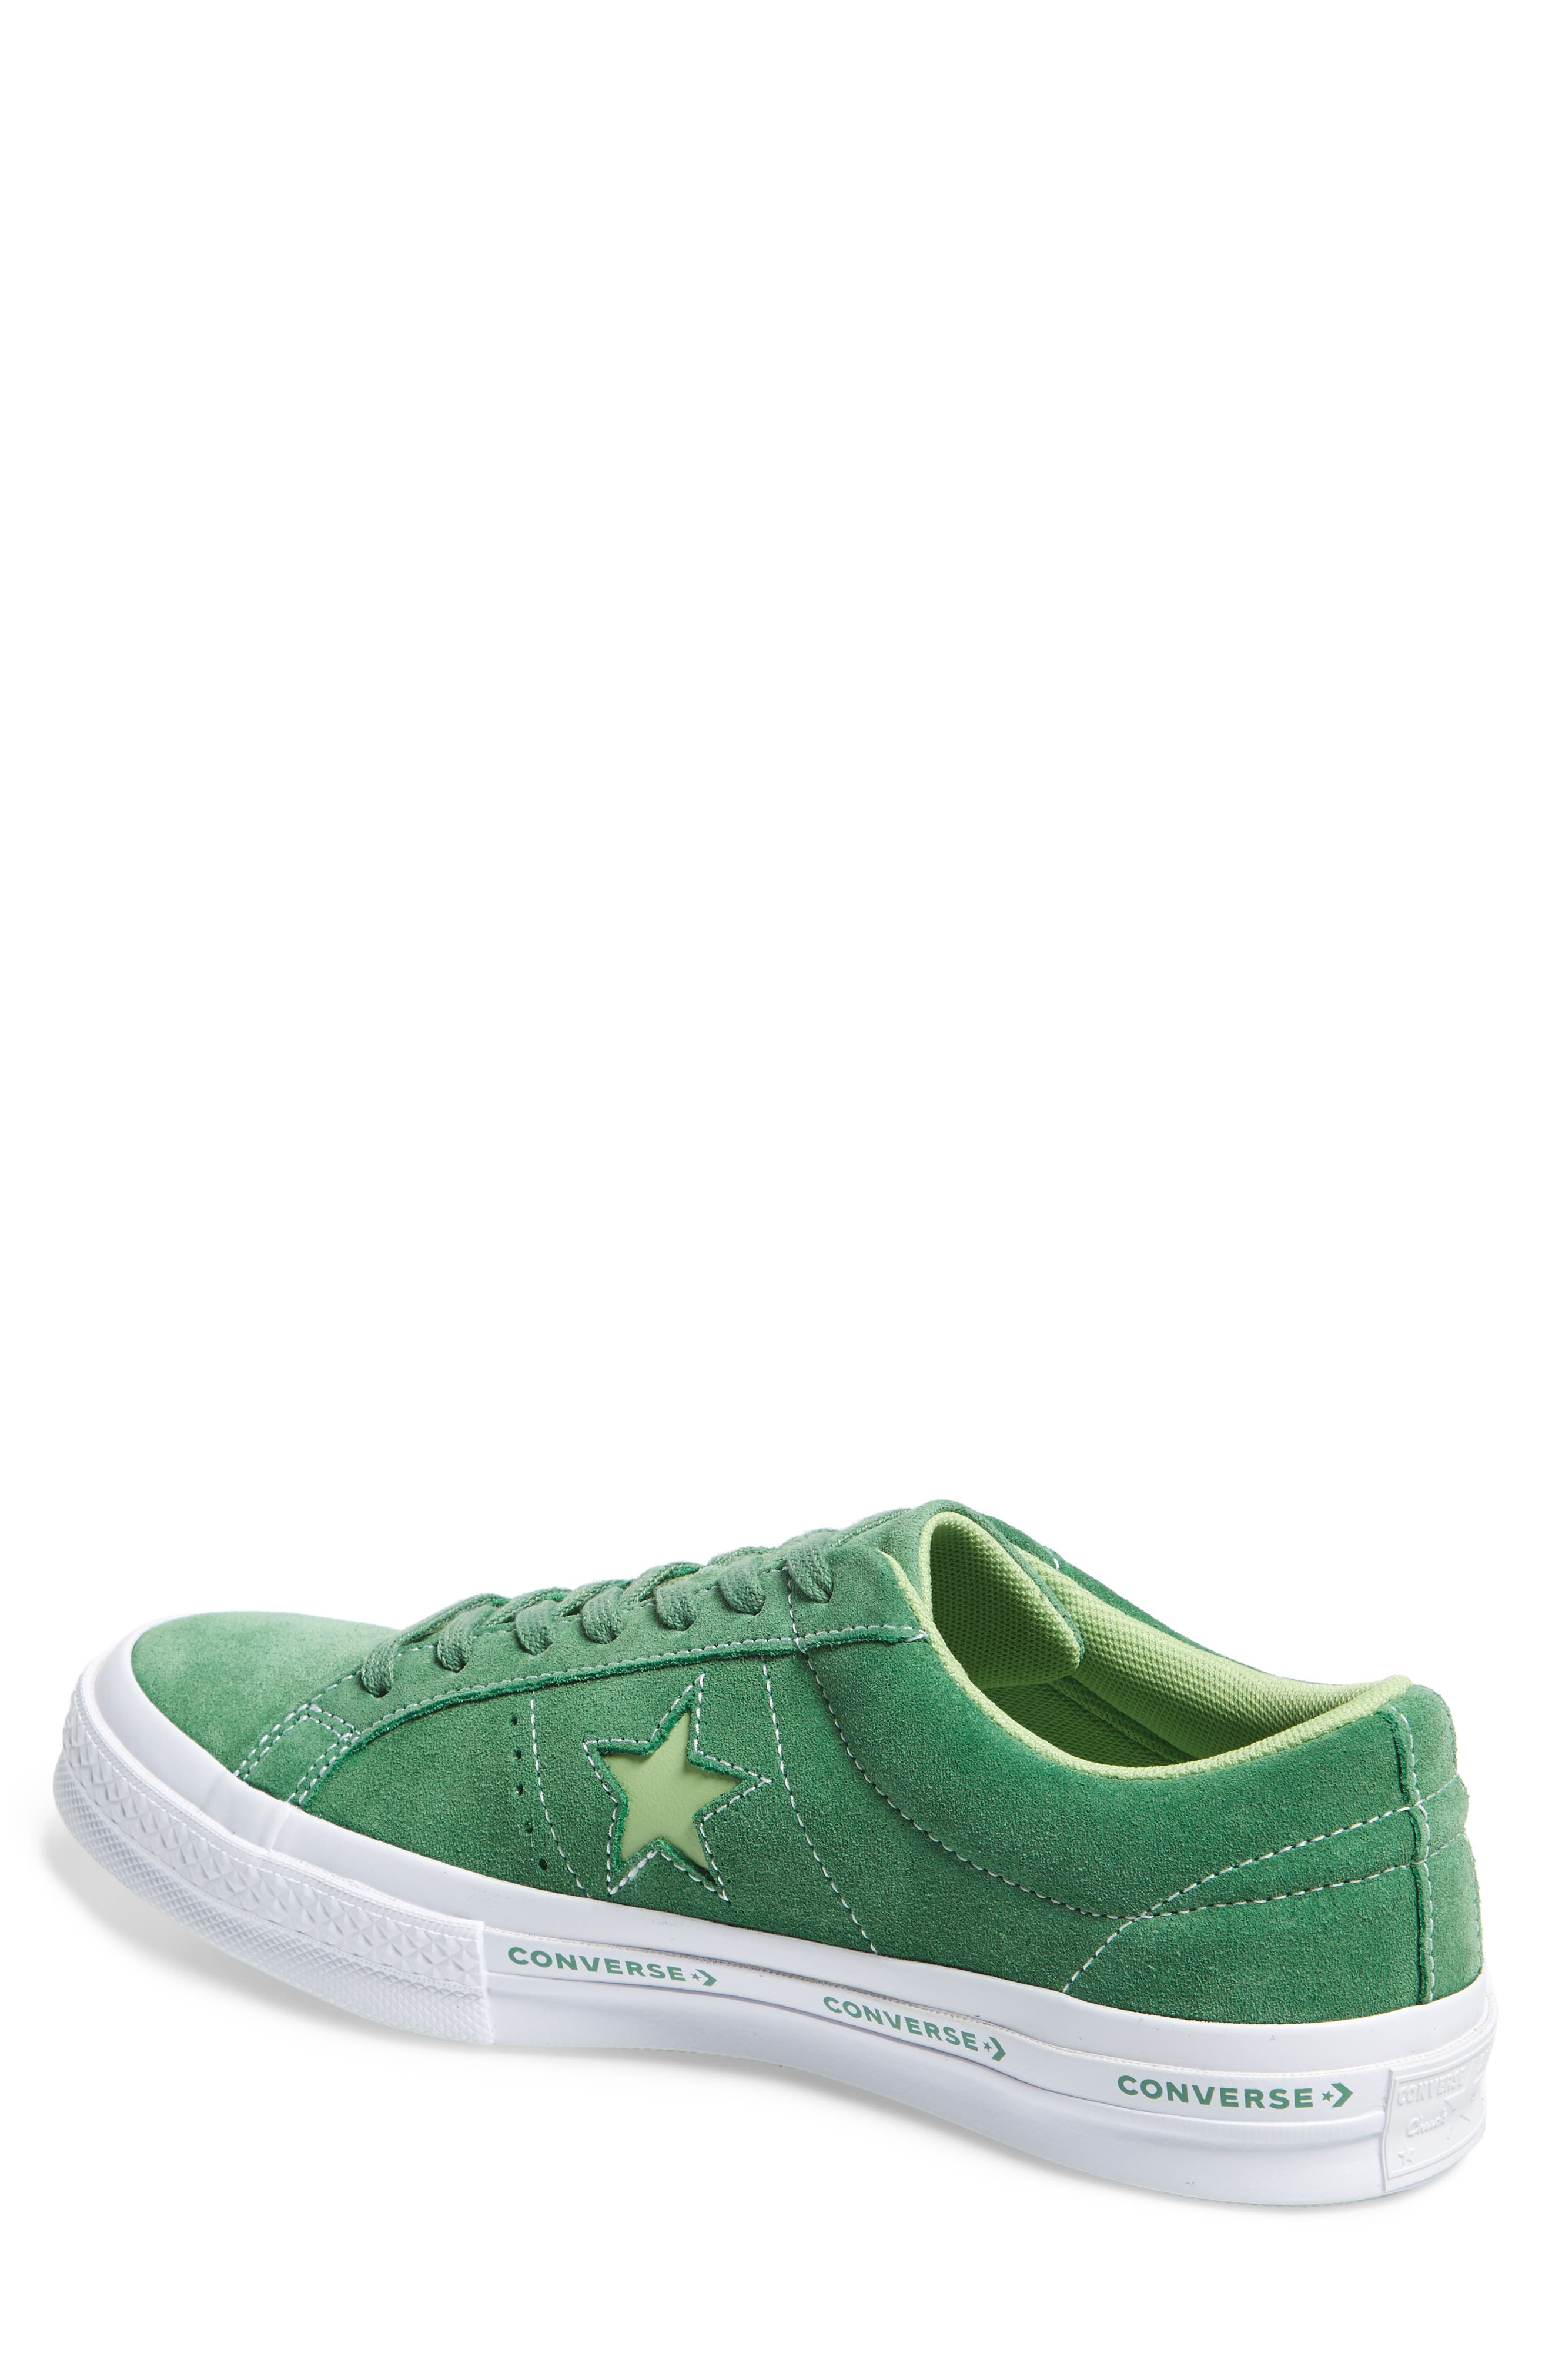 Chuck Taylor<sup>®</sup> One Star Pinstripe Sneaker,                             Alternate thumbnail 2, color,                             350